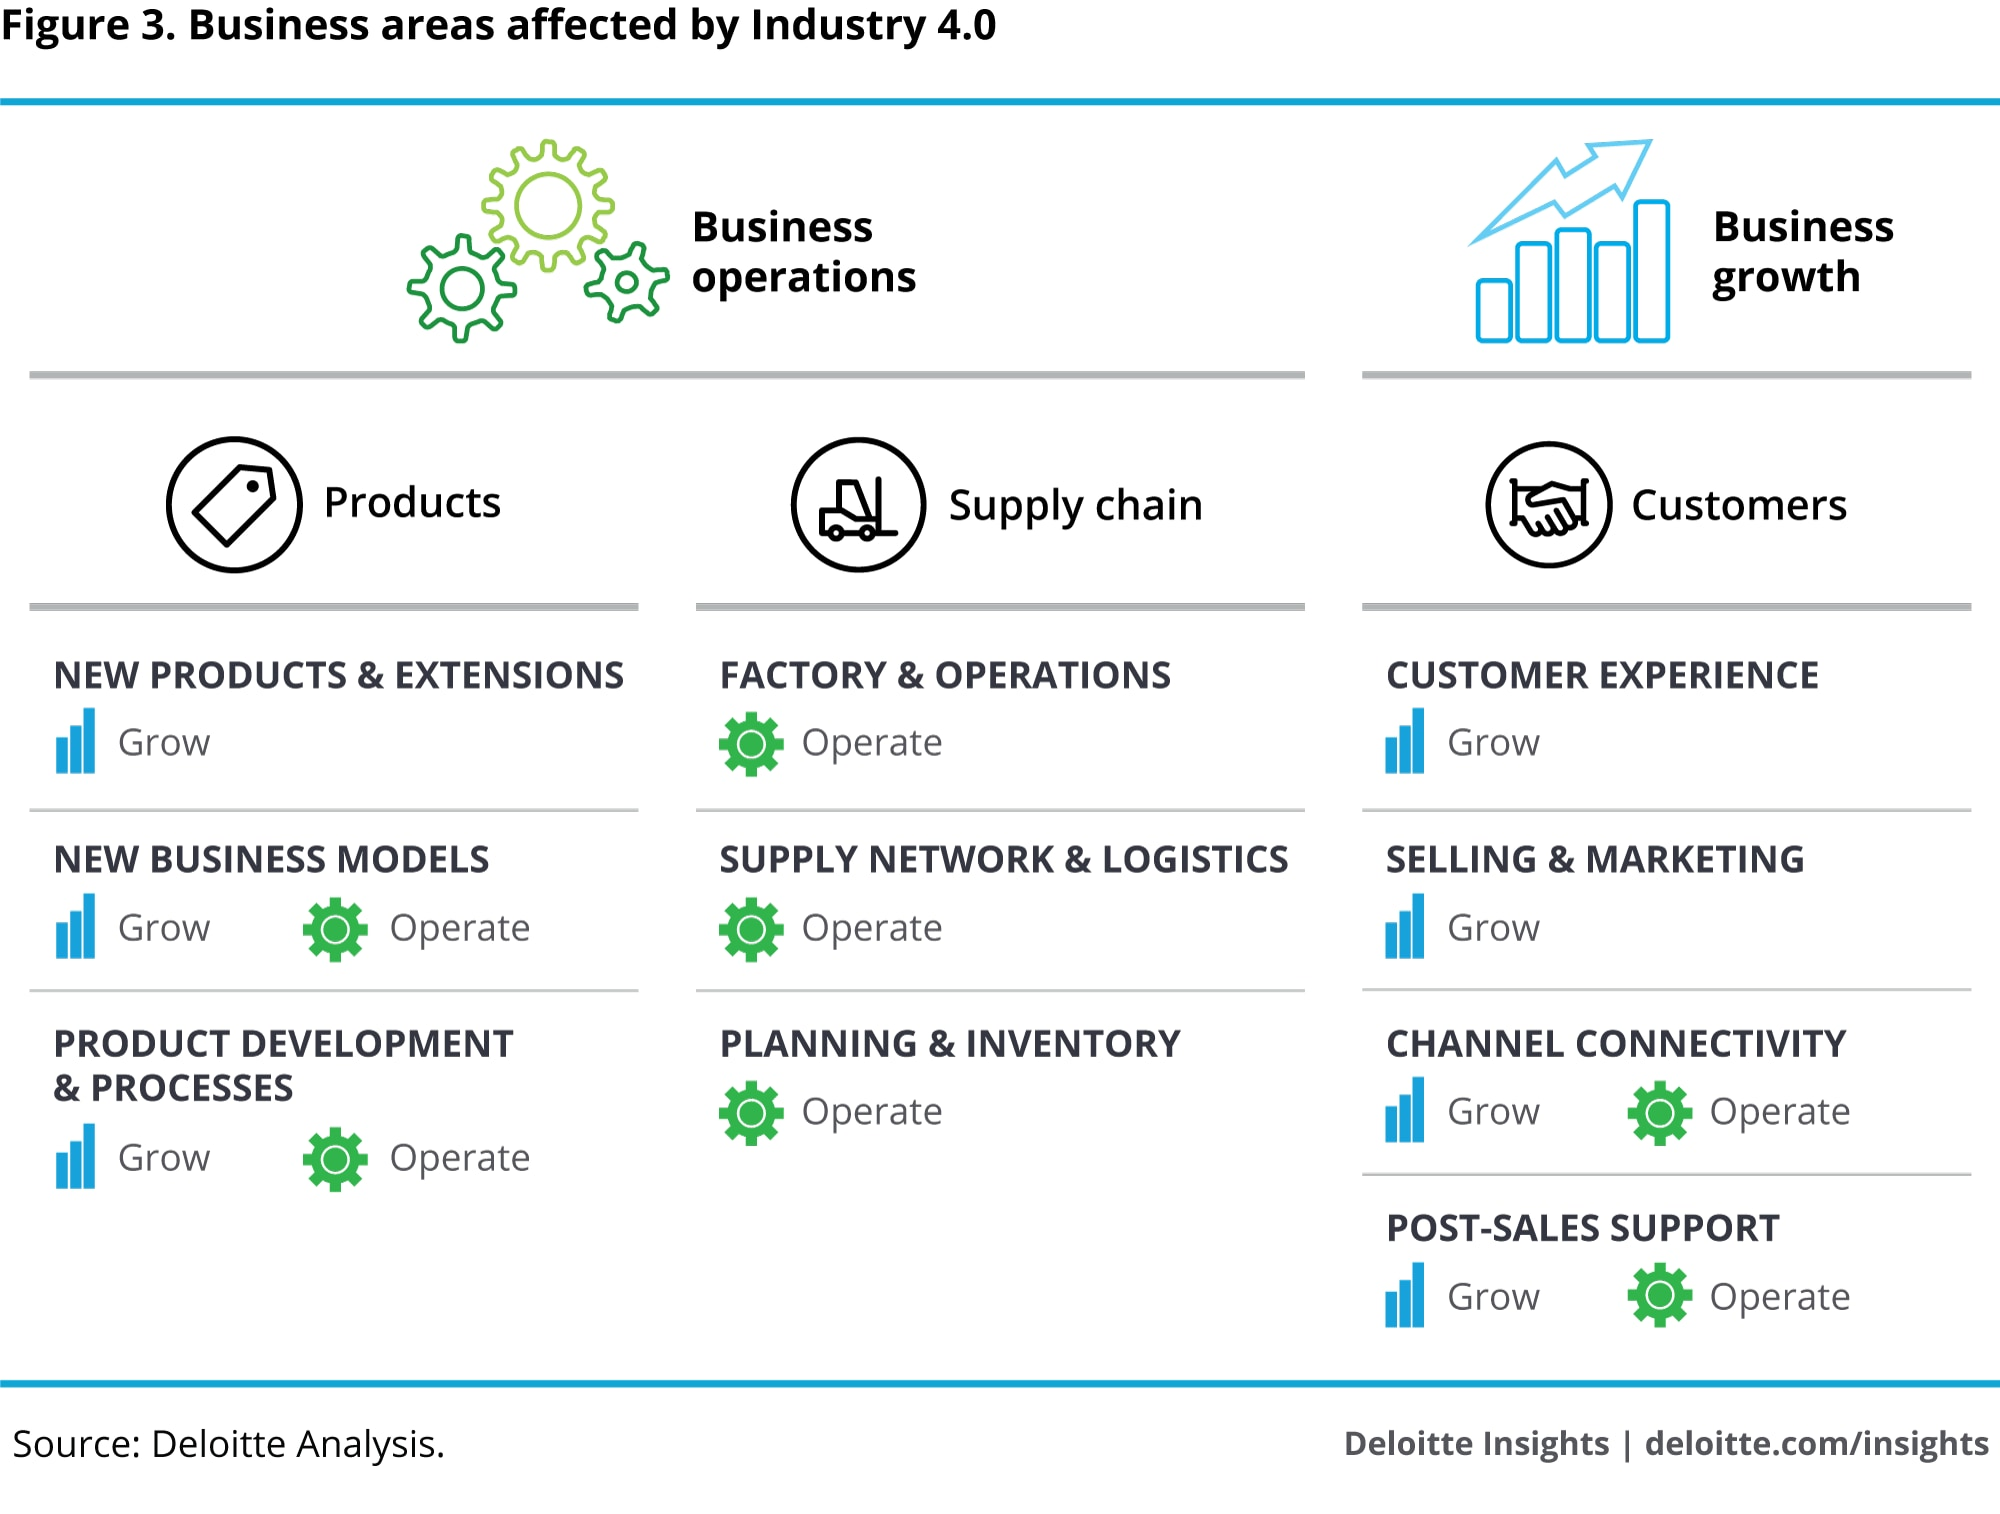 Business areas affected by Industry 4.0